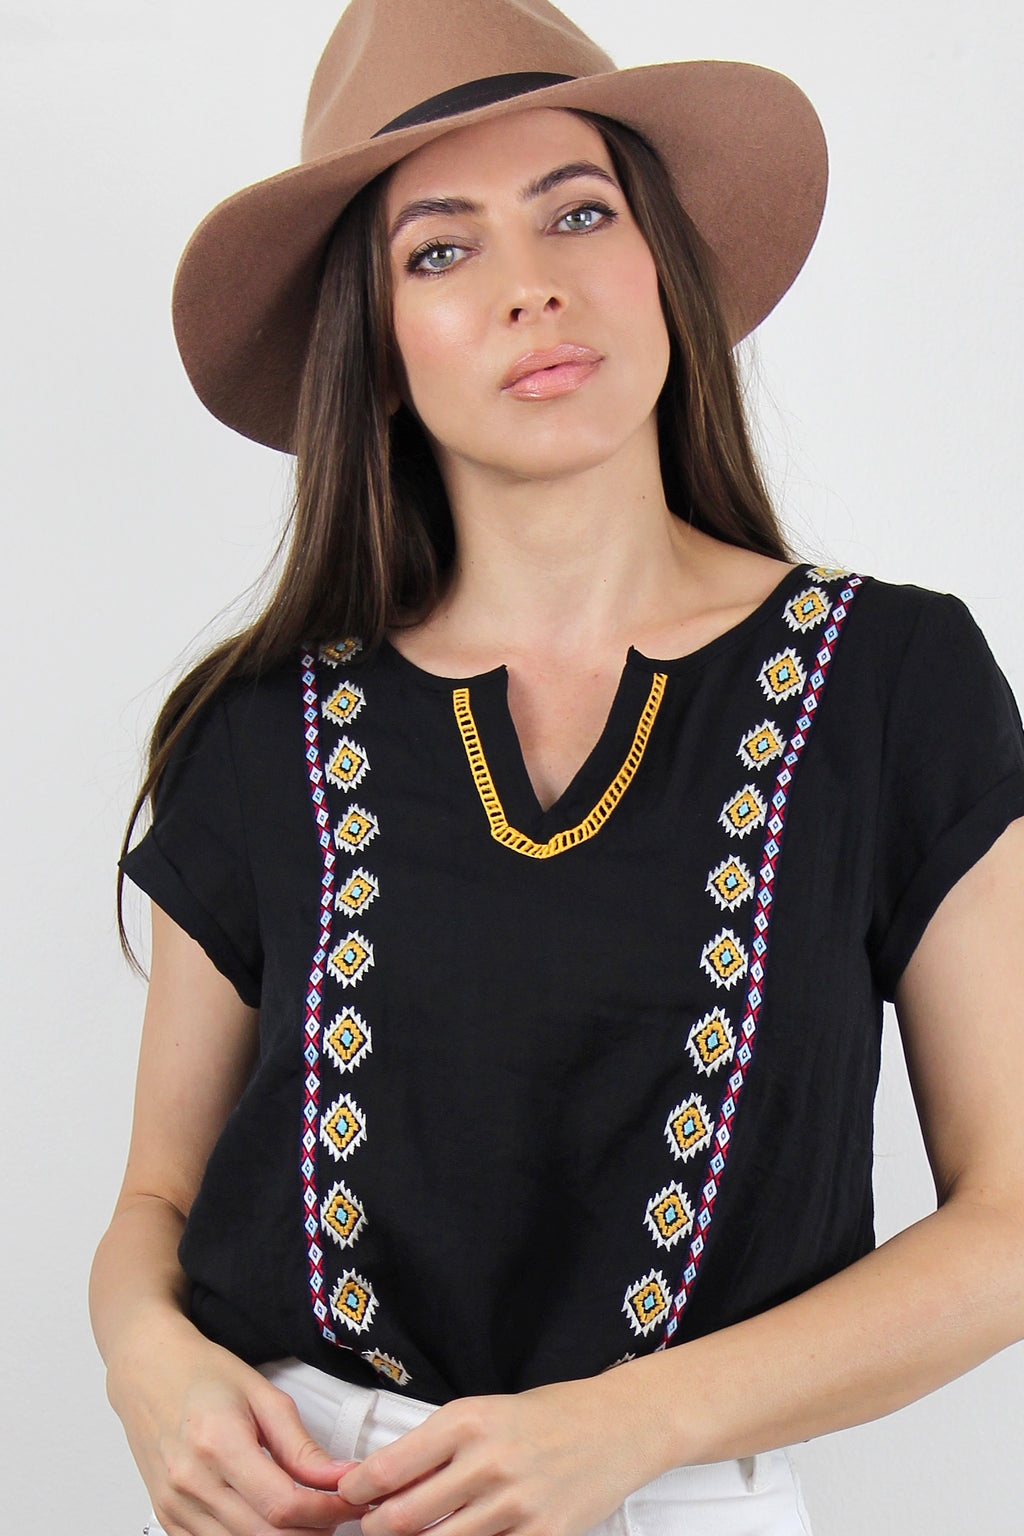 Embroidered short sleeve blouse, in Black.